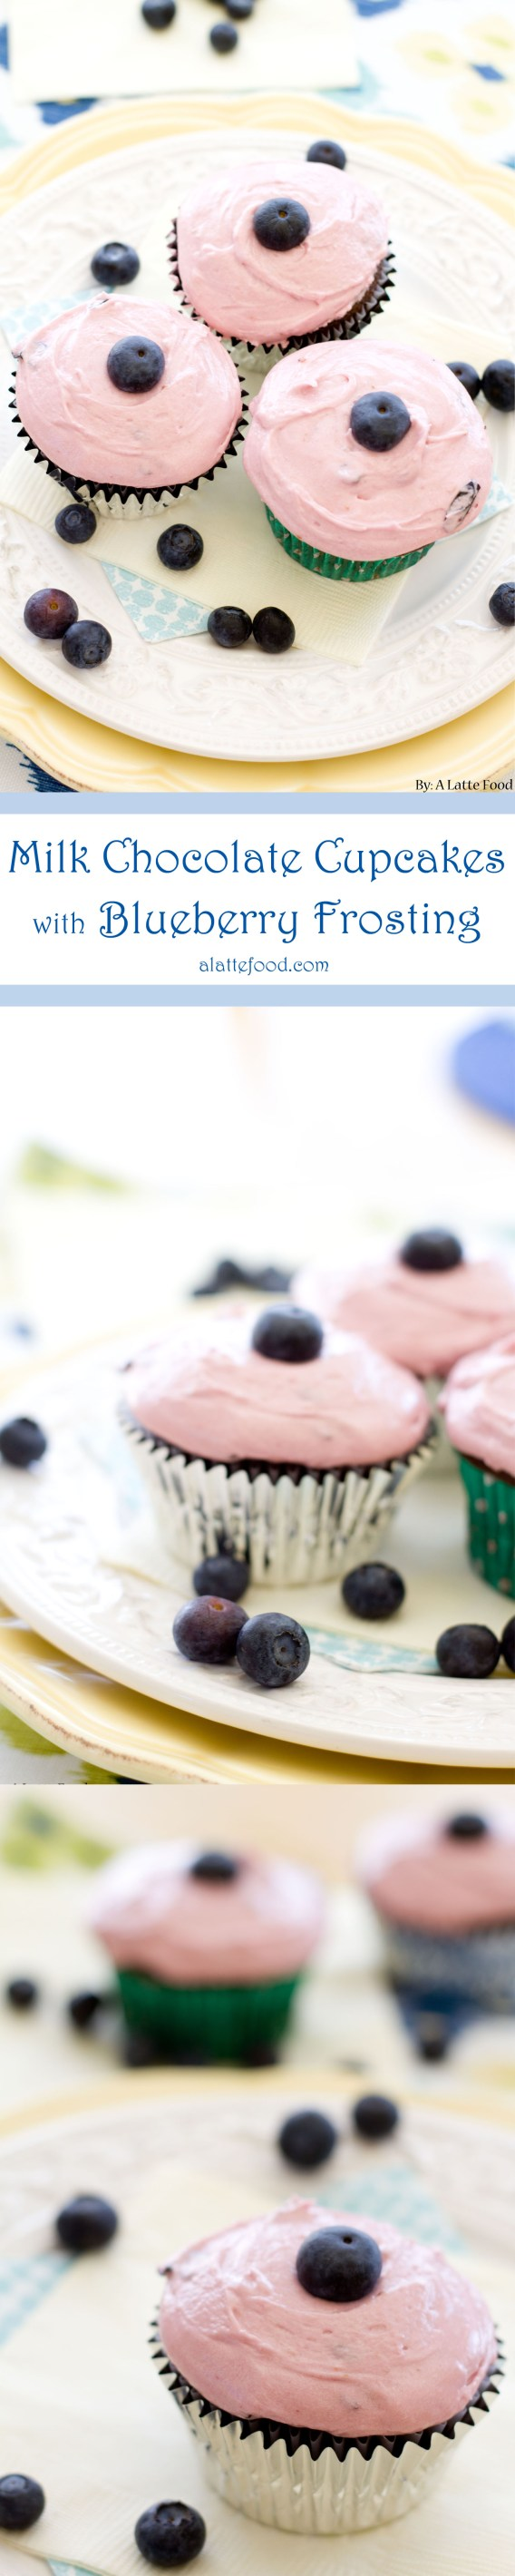 Milk Chocolate Cupcakes with Blueberry Frosting | A Latte Food